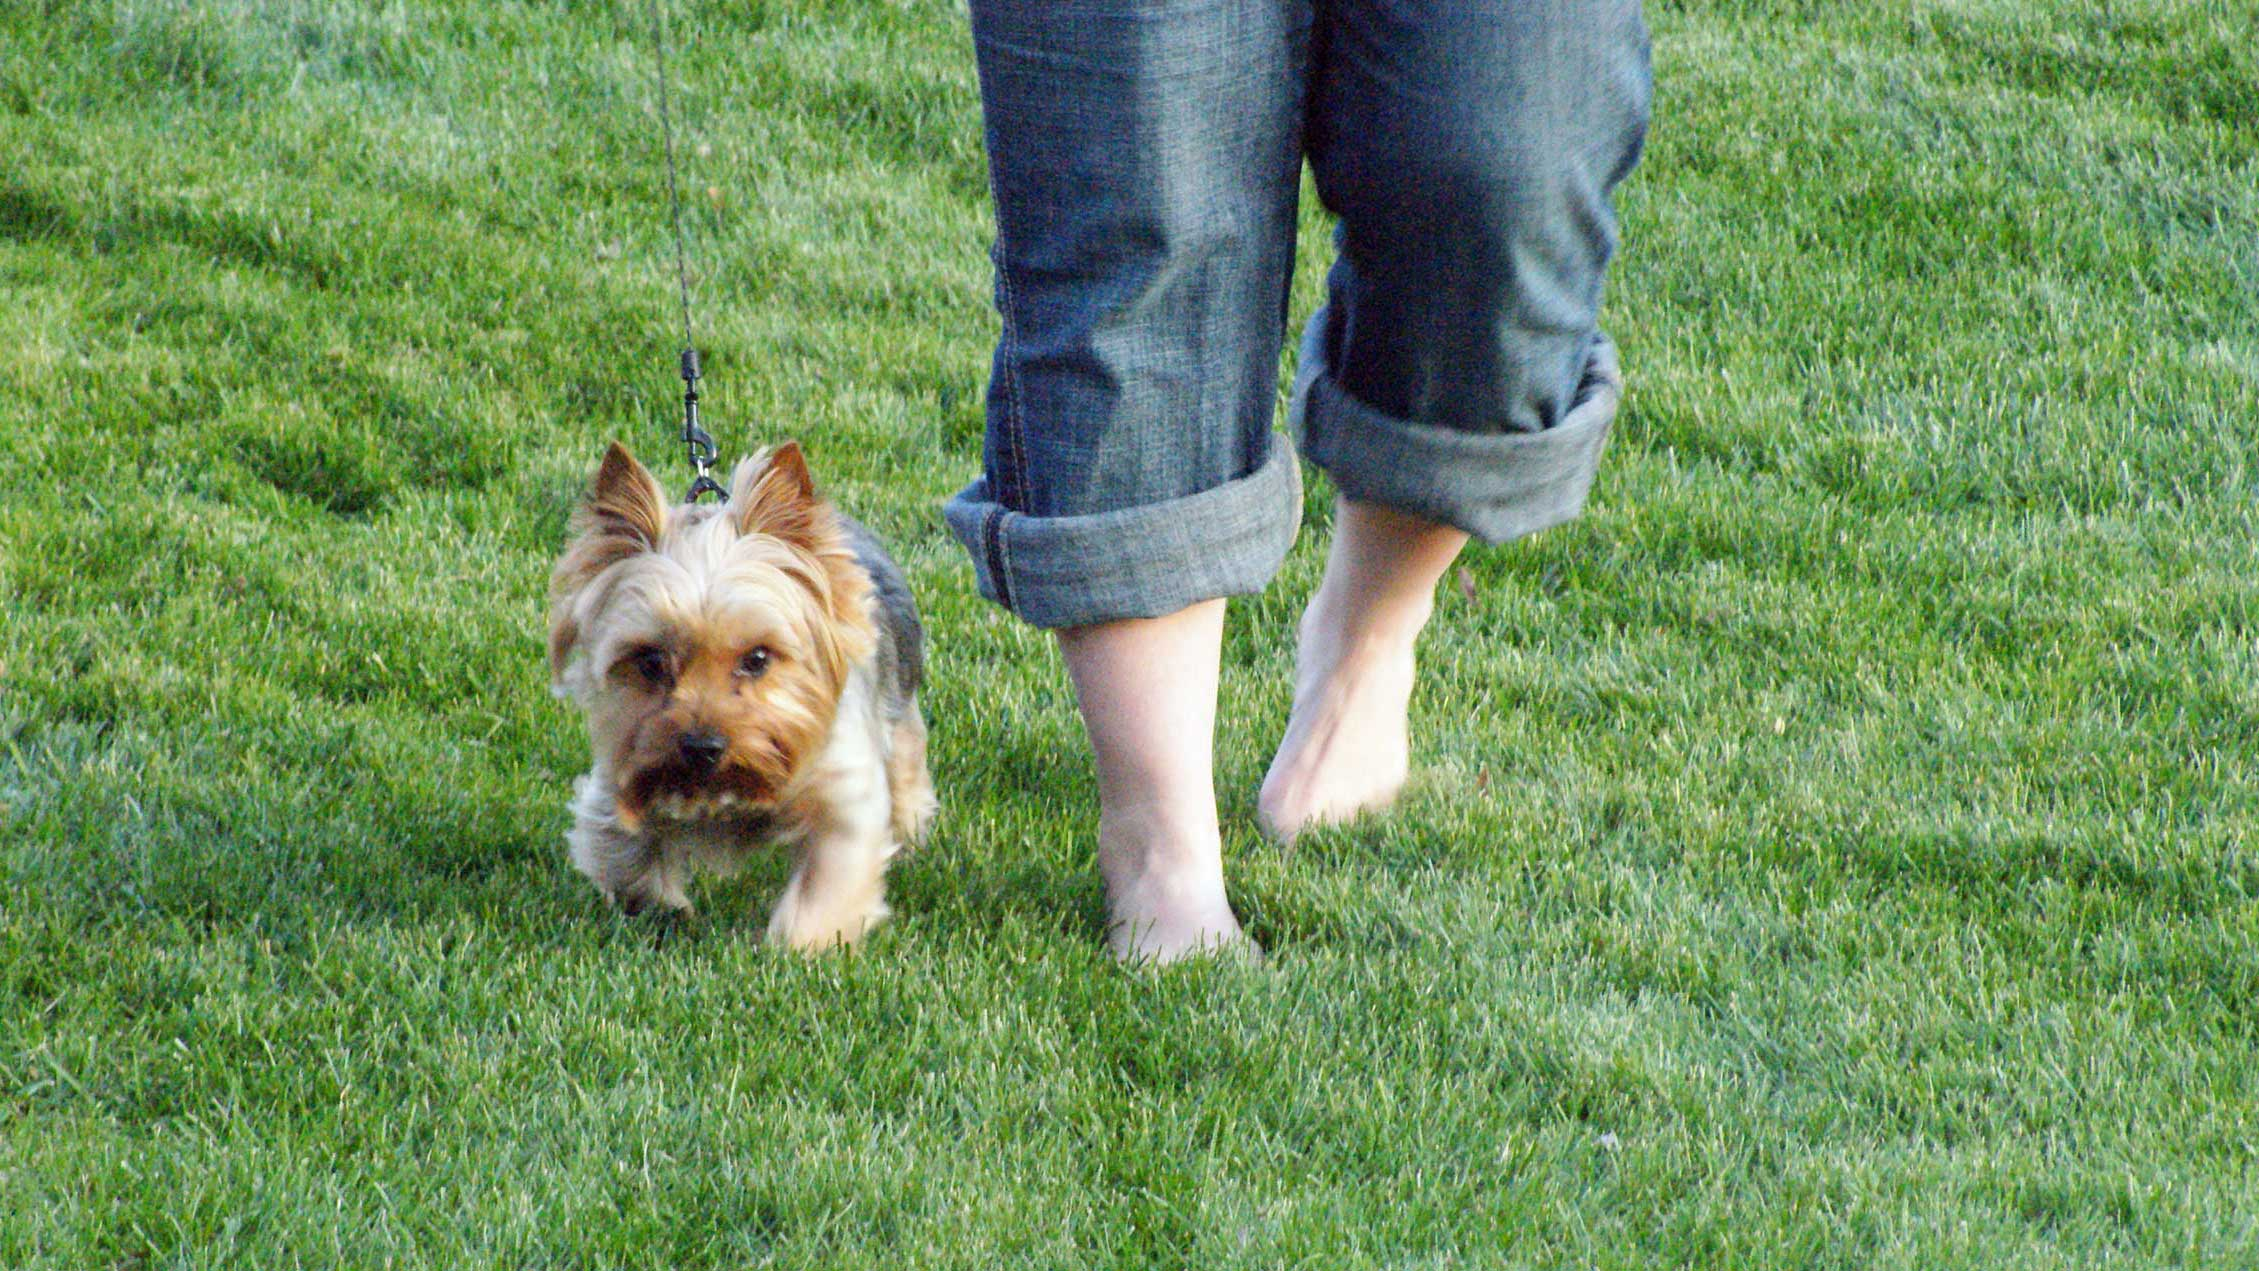 Feet and Dog in Grass